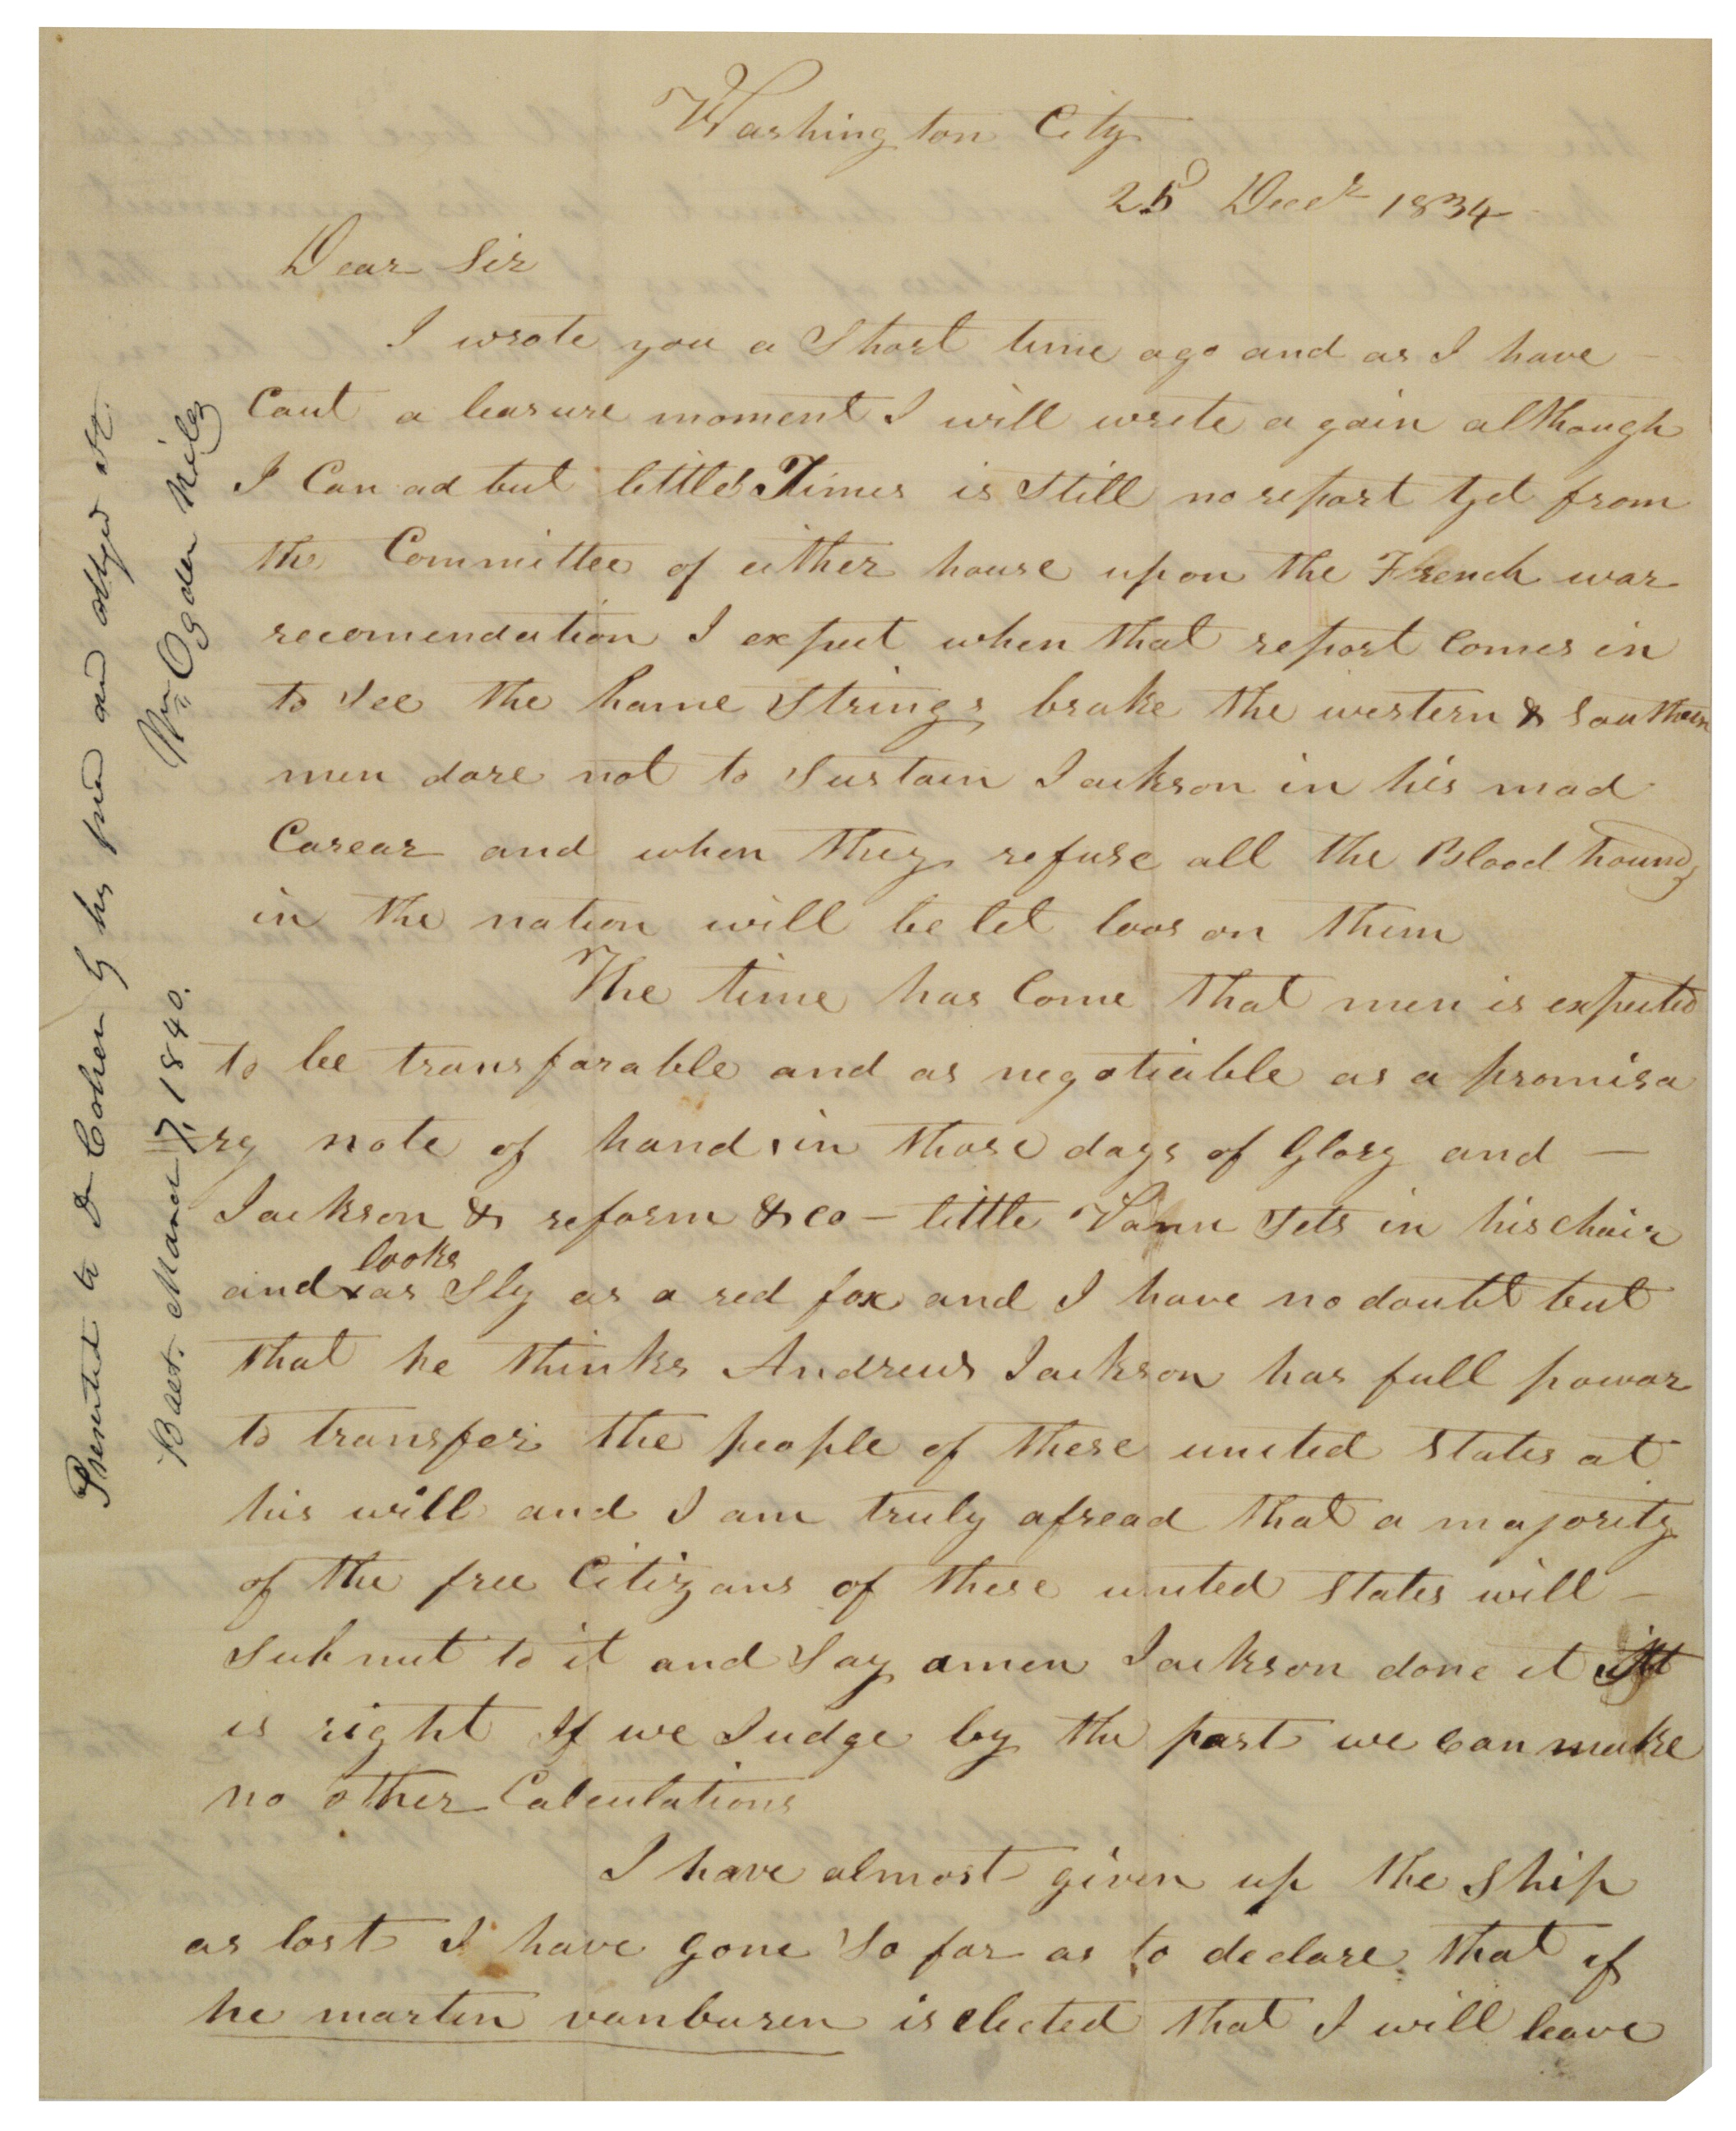 a discussion on andrew jackson and the moving of the indians History unfolds in this work to document andrew jackson's desire to remove the indians  jacksonland: president andrew jackson,  of jackson and ross moving.